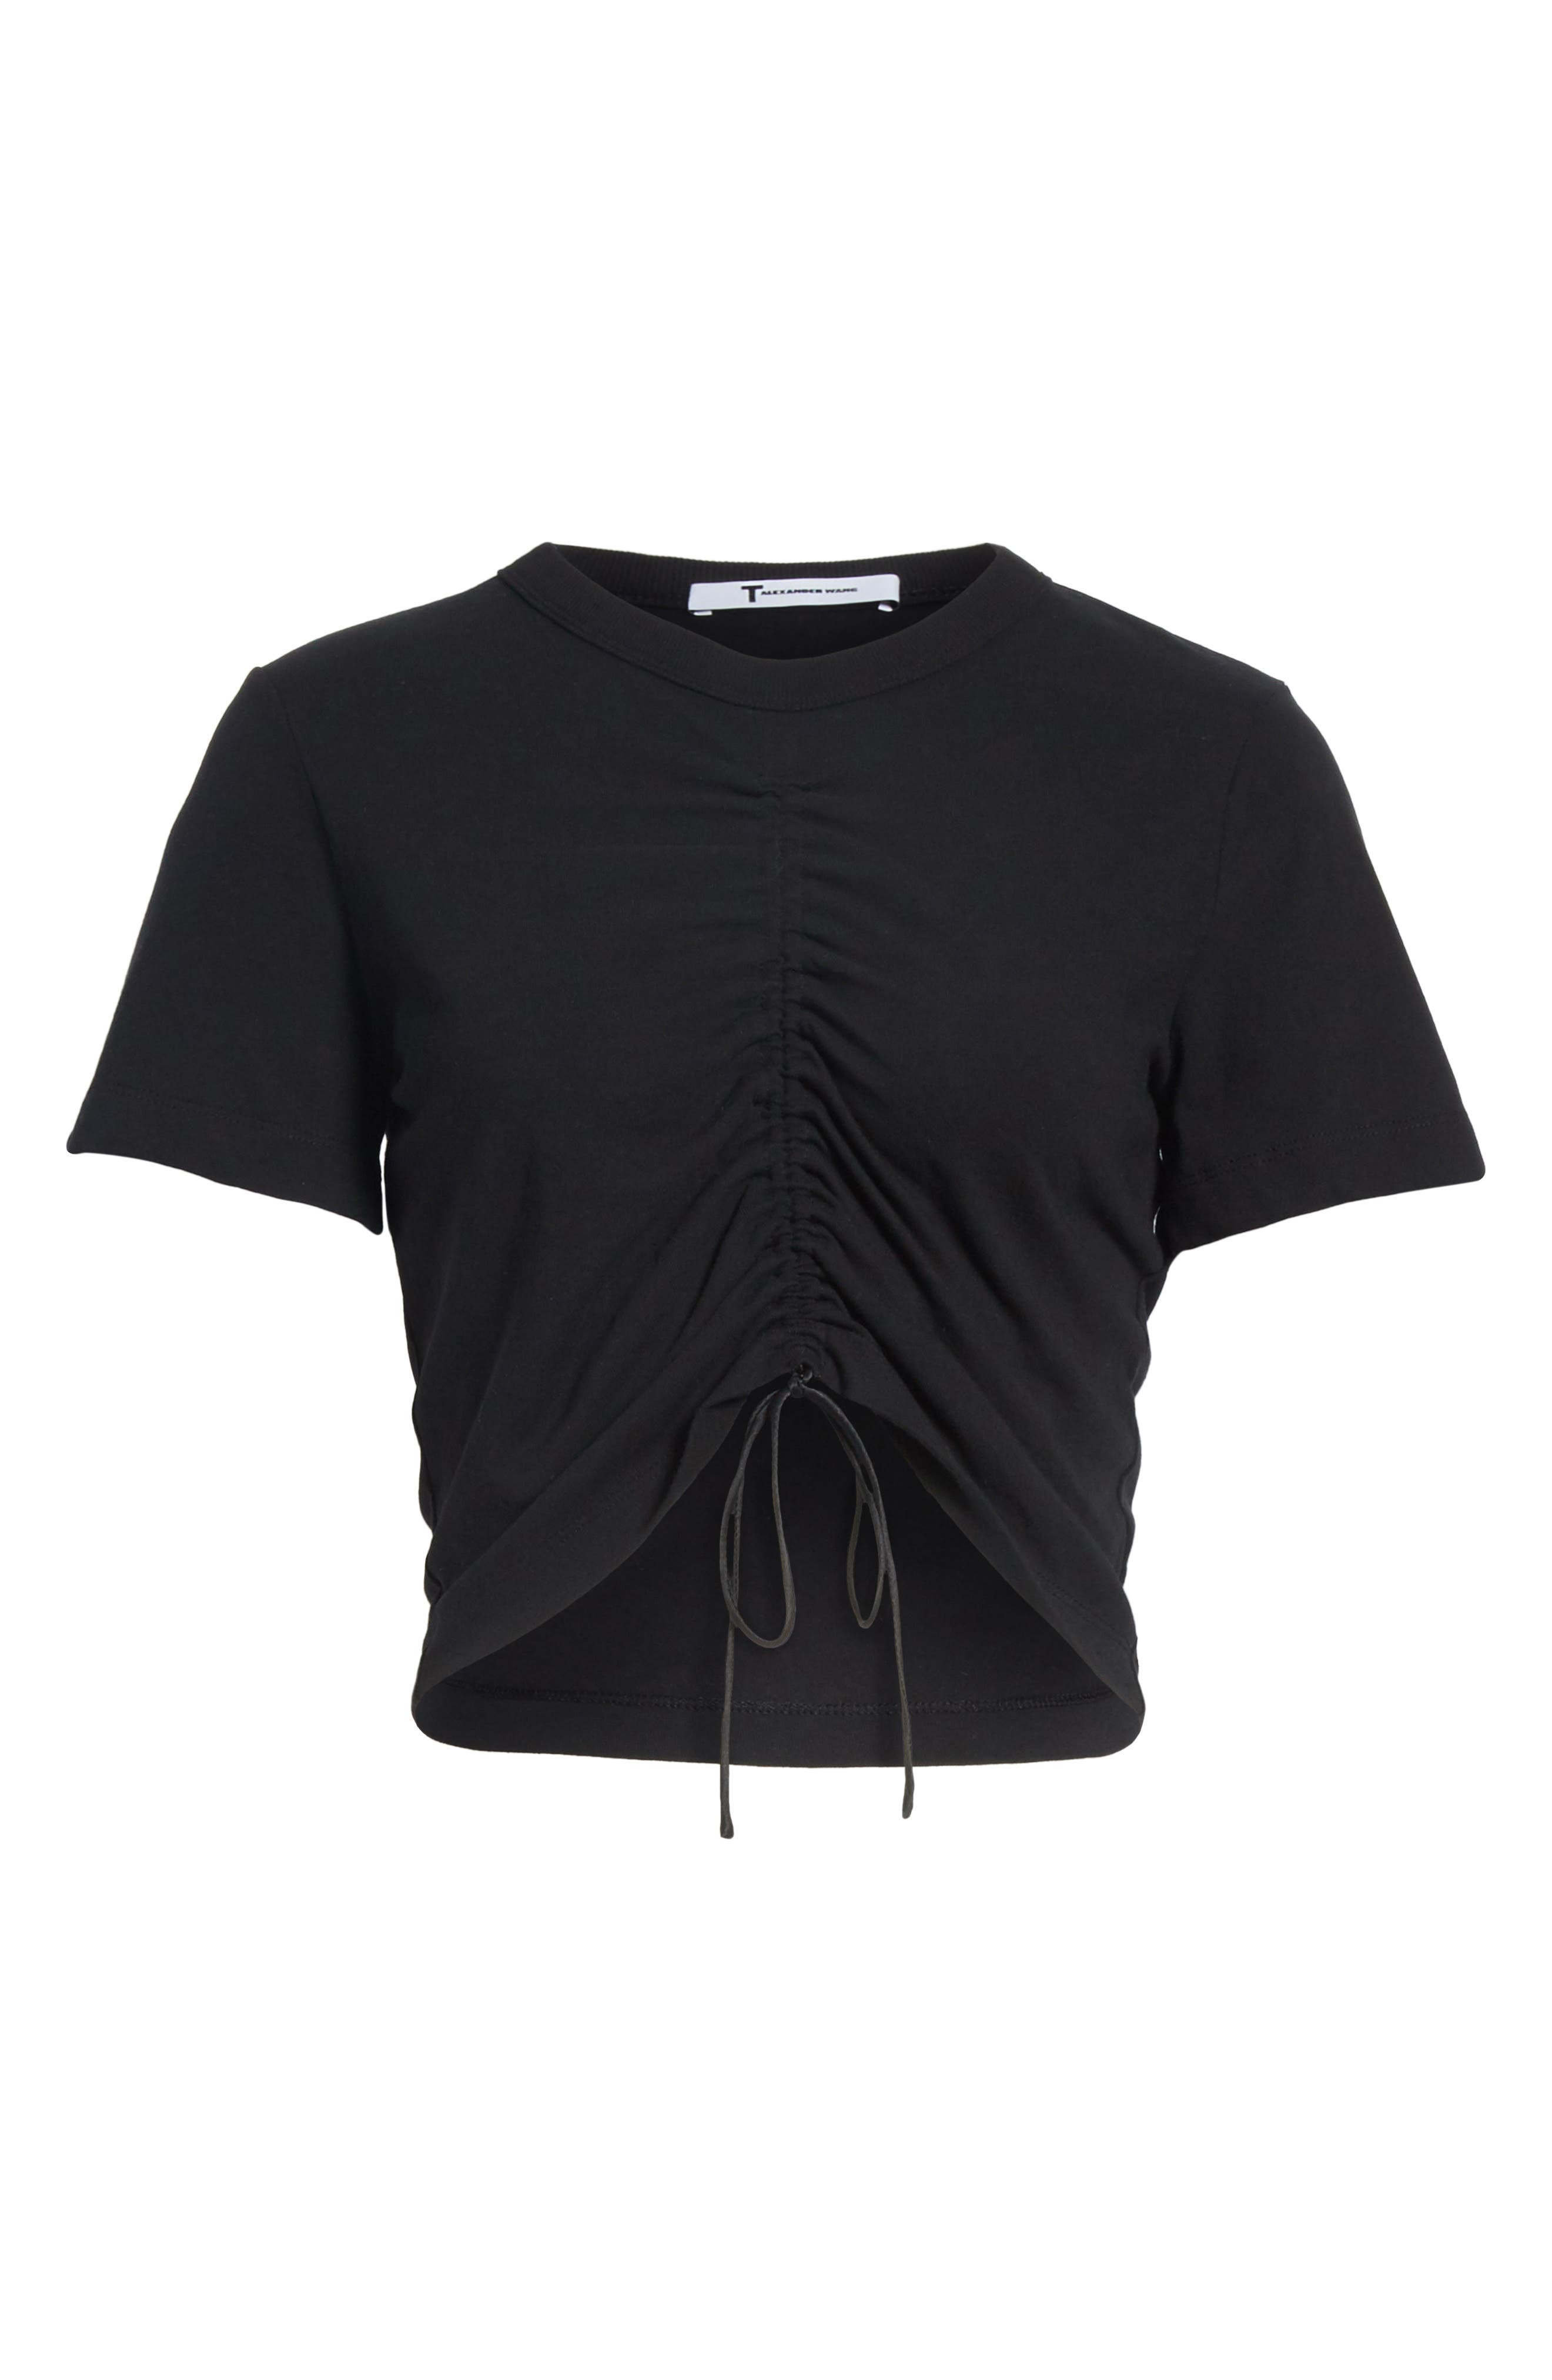 T by Alexander Wang Ruched Cotton Tee,                             Alternate thumbnail 6, color,                             001